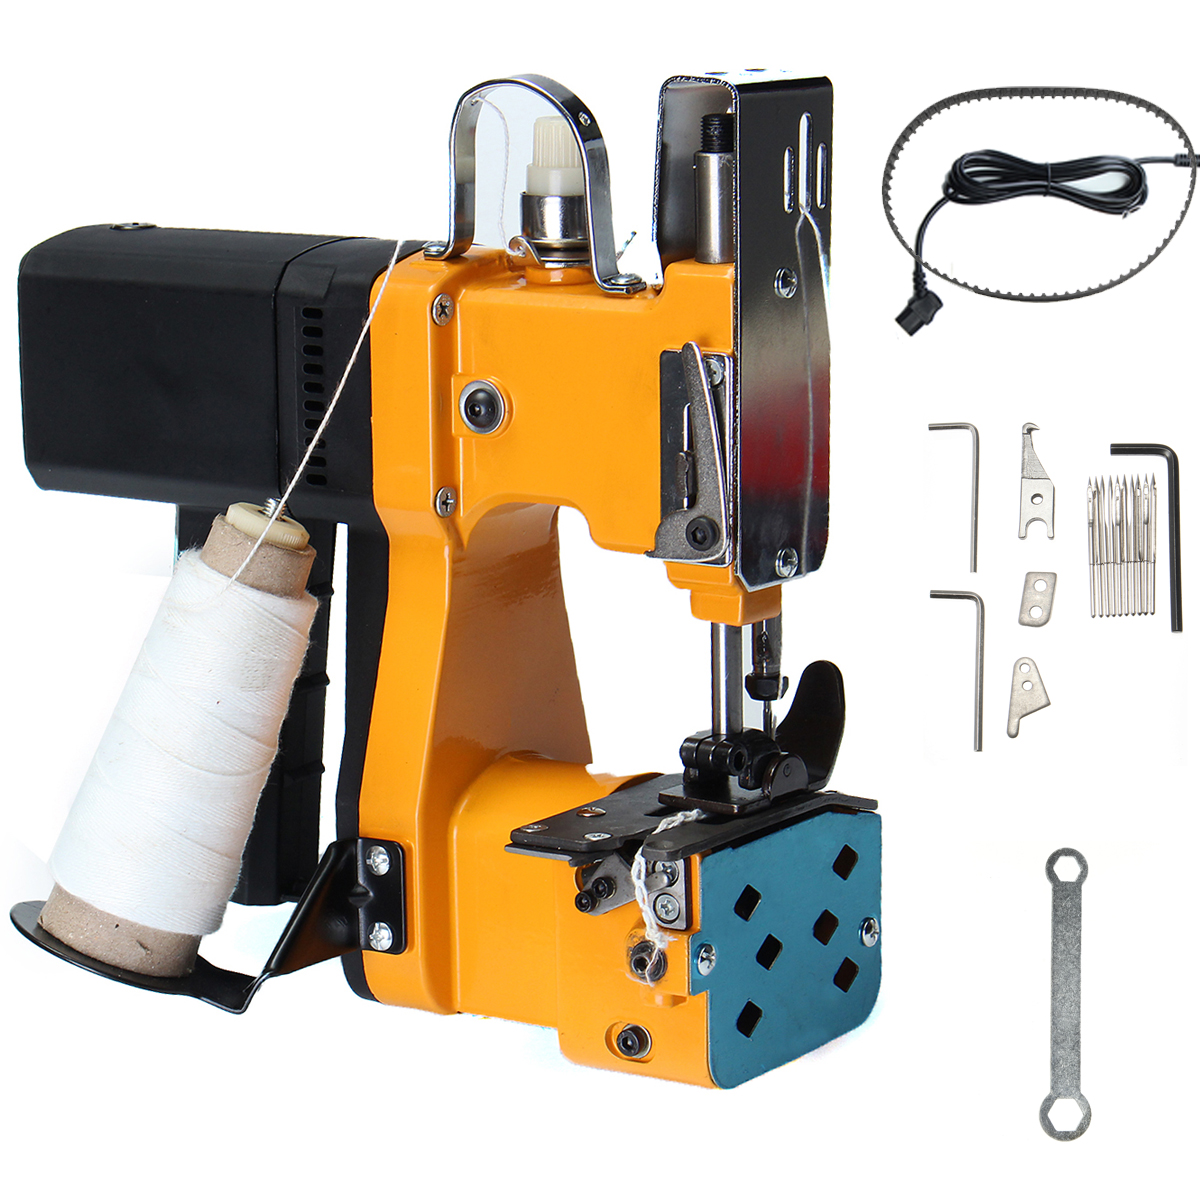 220V Portable Electric Sewing Machine Seal Ring Machines Industrial Cloth Tools